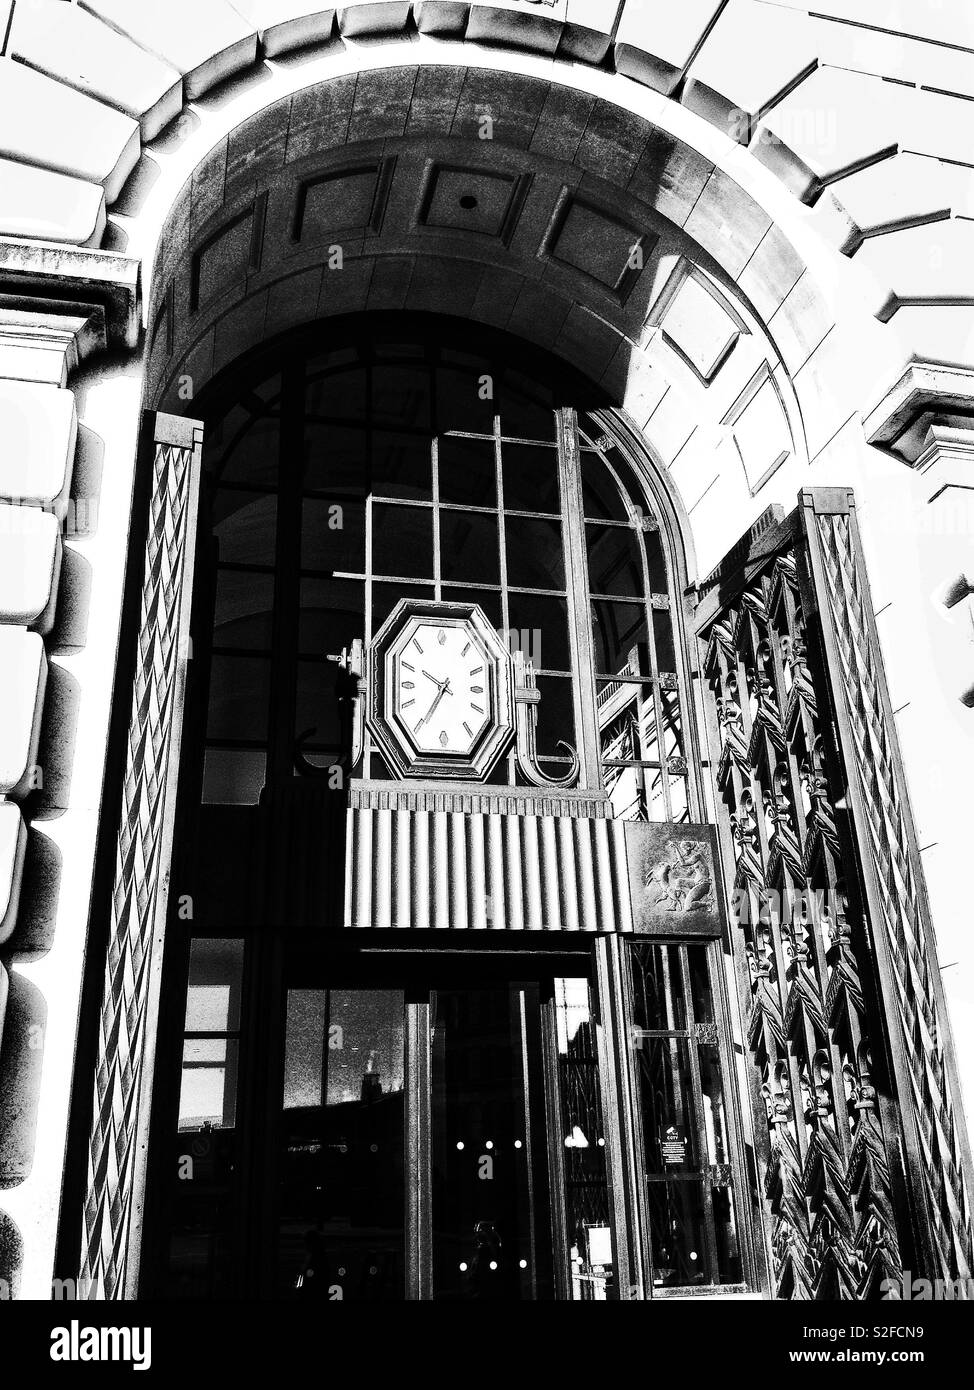 1930's Art Deco entrance to Unilever House, Victoria Embankment, London showing the octagonal clock and ornate metalwork - Stock Image